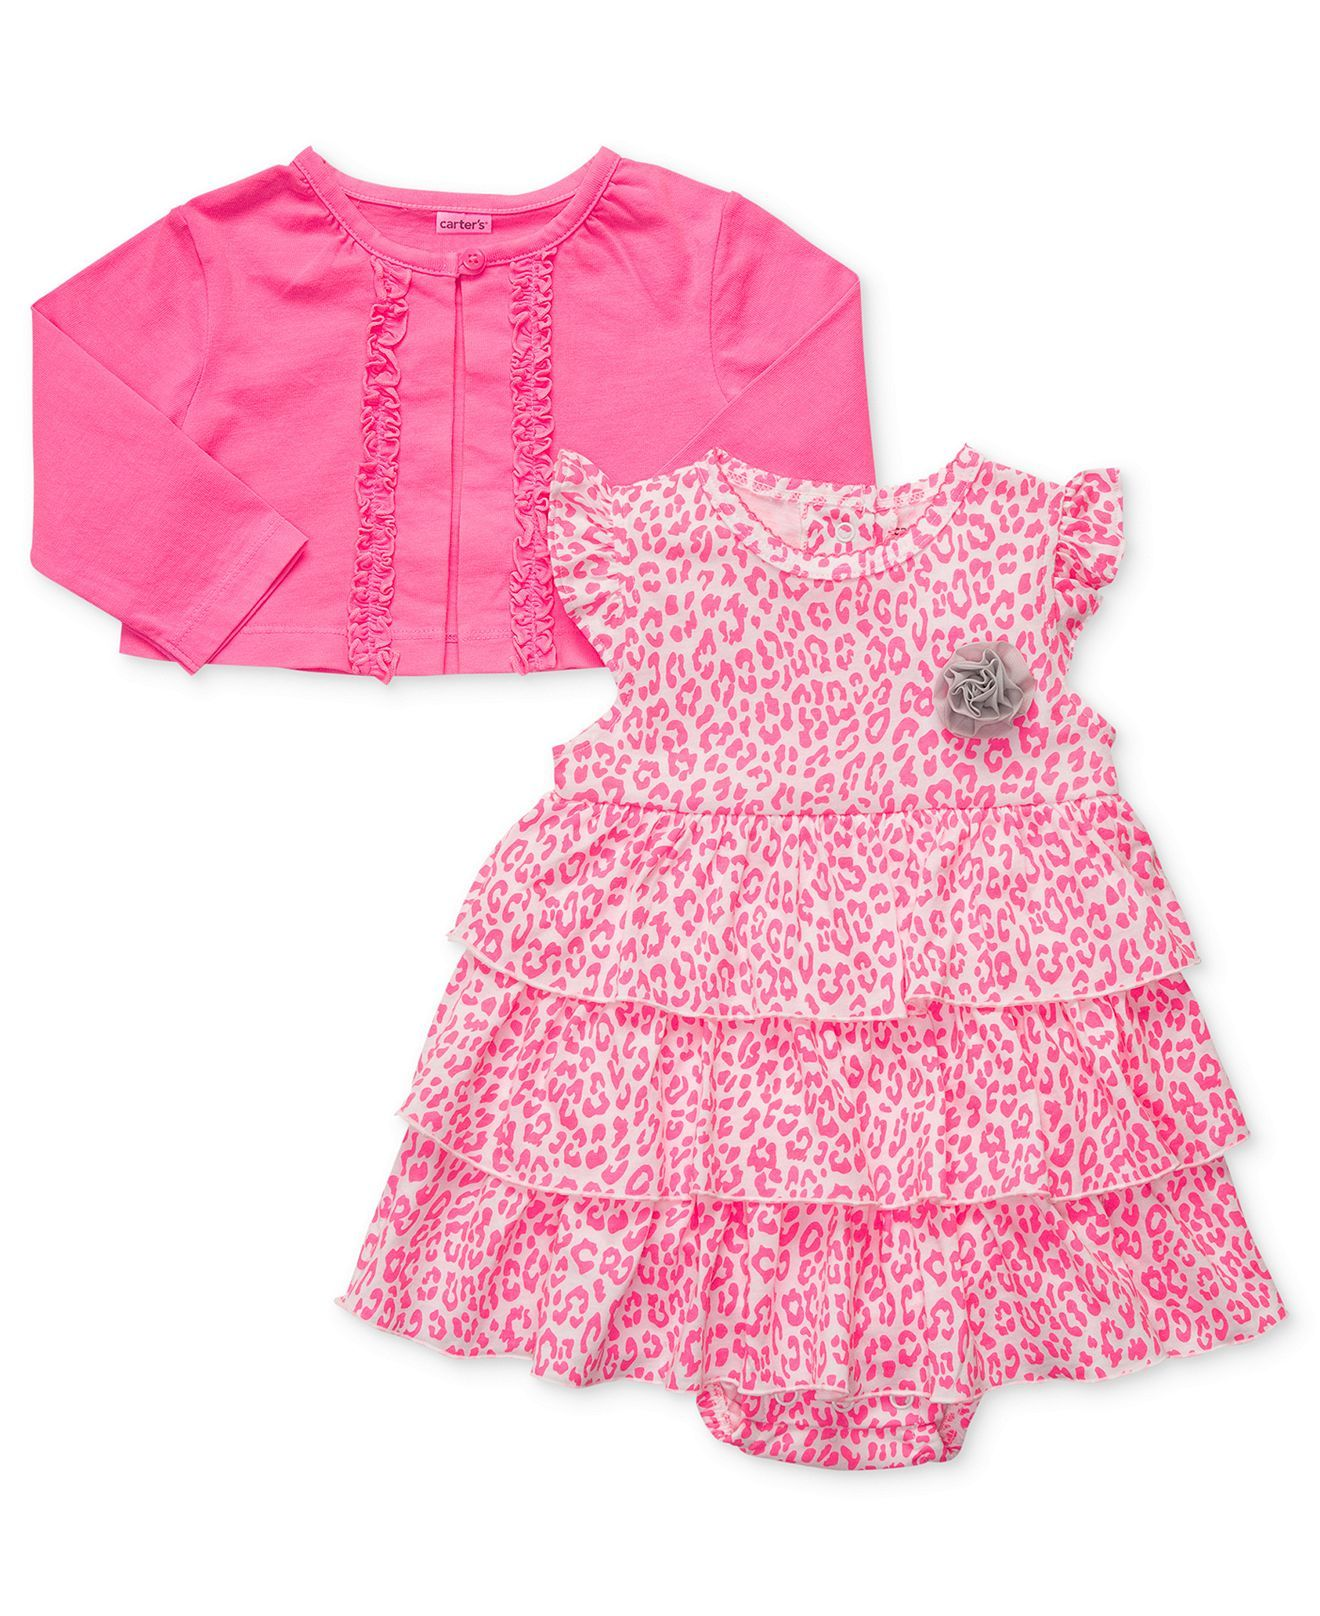 038bf547b Carters Baby Set, Baby Girls 2-Piece Set with Dress and Cardigan - Kids -  Macys - for the little one